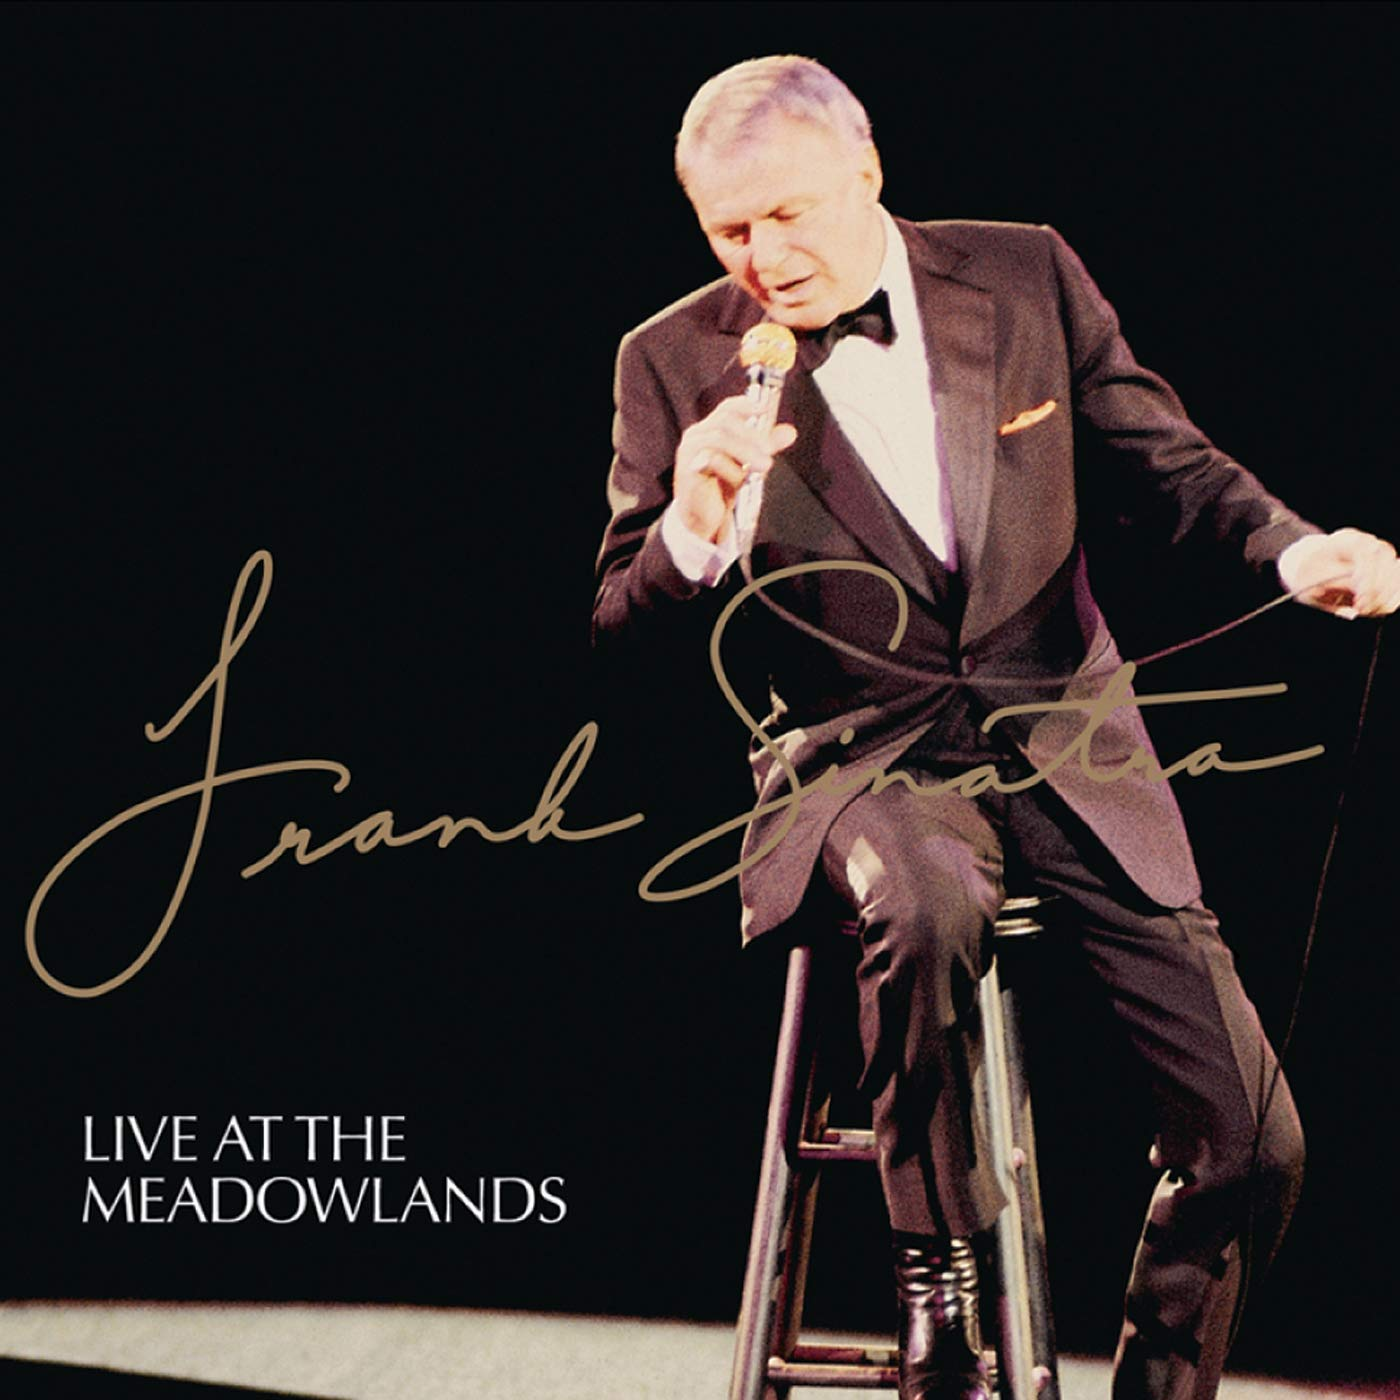 Frank Sinatra-Live At The Meadowlands-2CD-FLAC-2009-FLACME